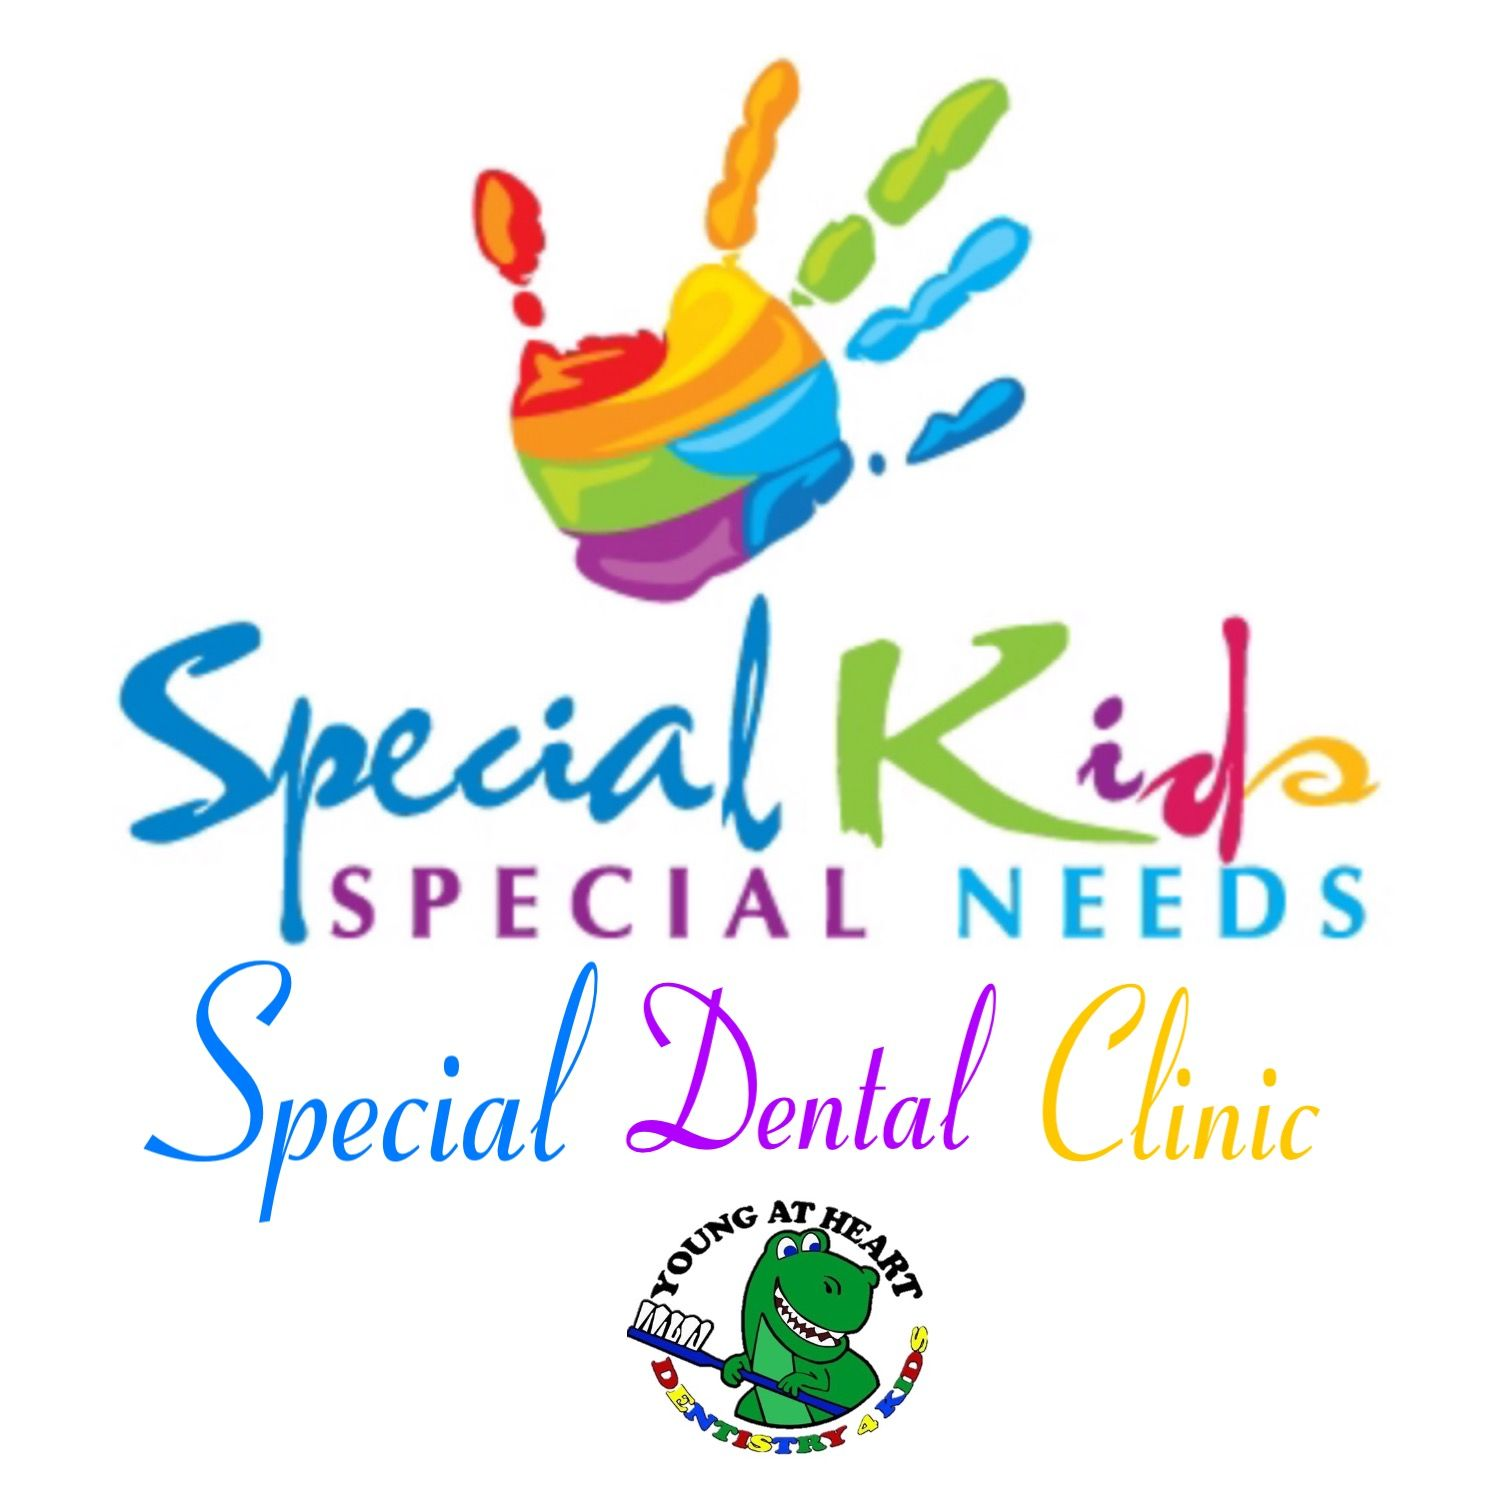 Special kids with special needs, need a special dental